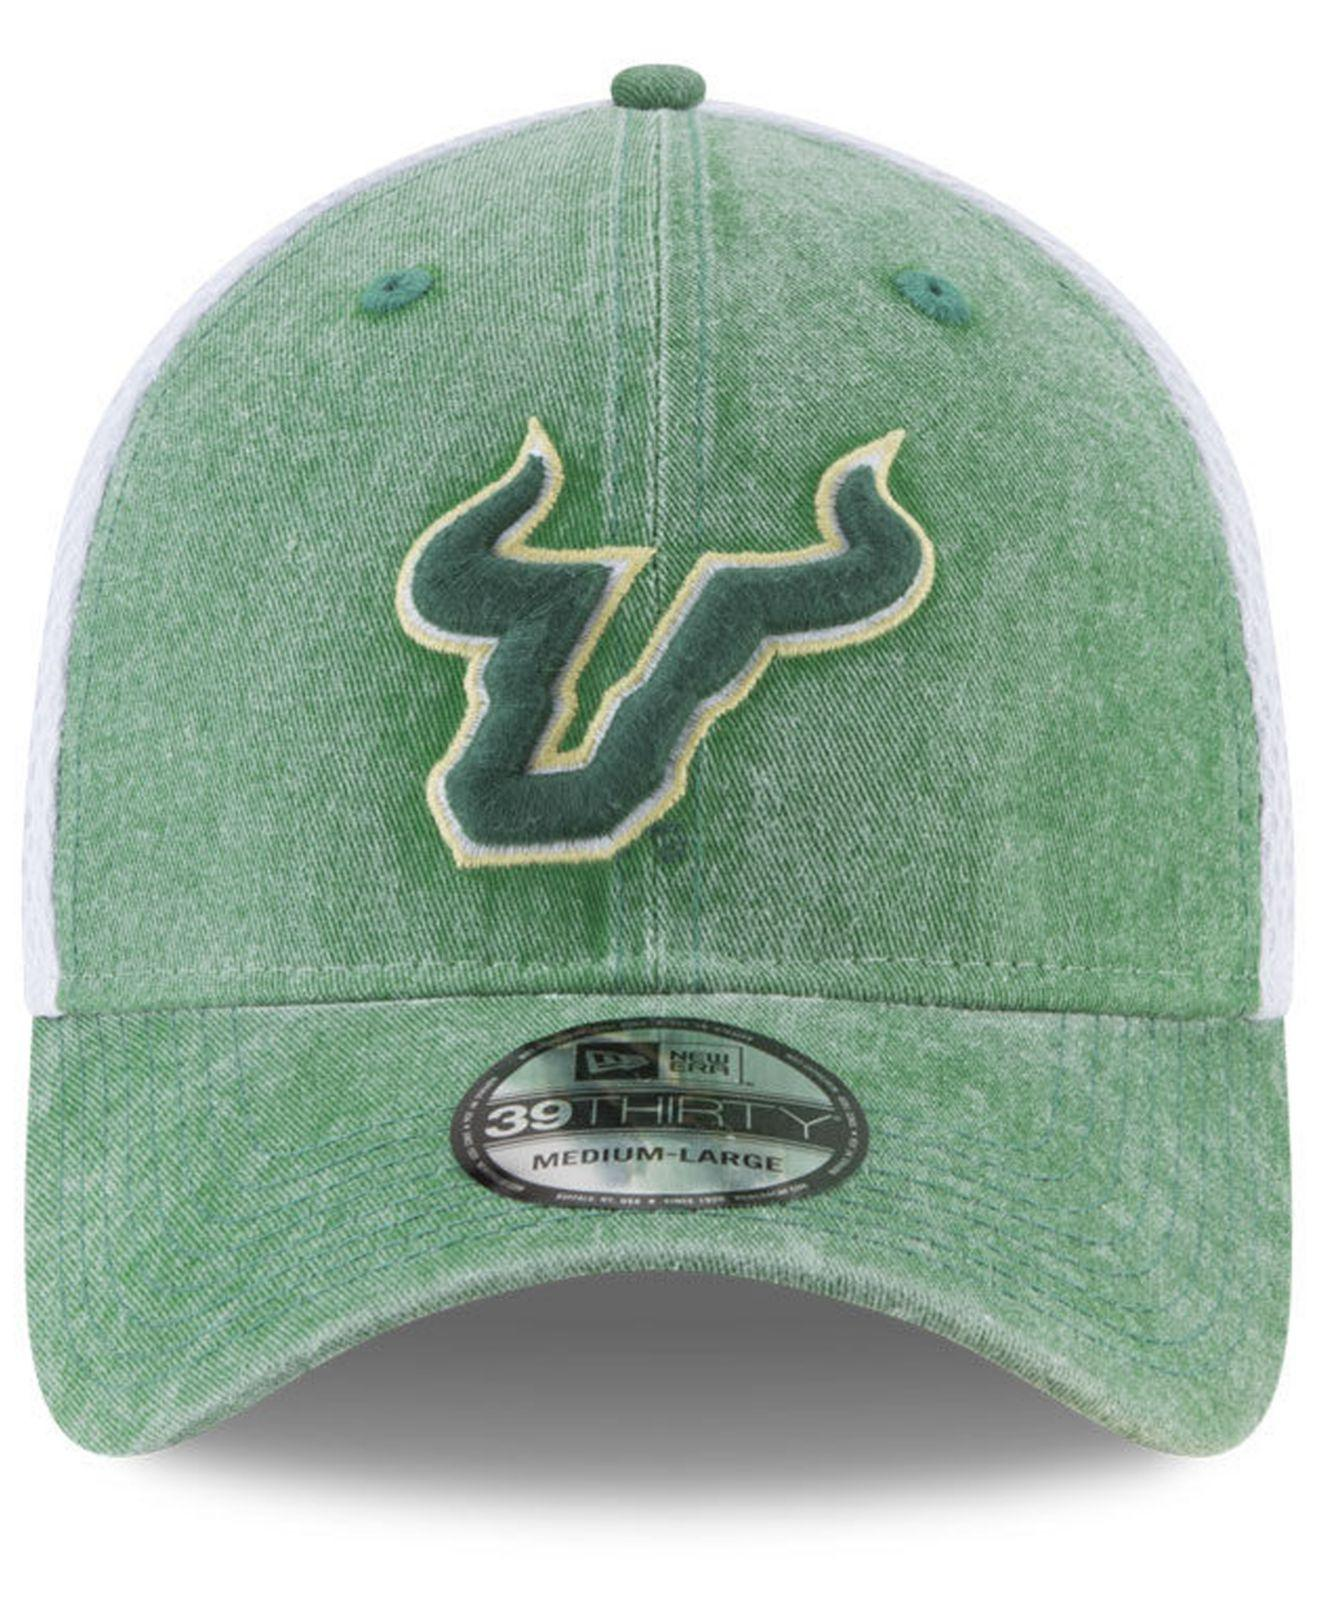 new product 171b6 d54ee Lyst - KTZ South Florida Bulls Washed Neo 39thirty Cap in Green for Men